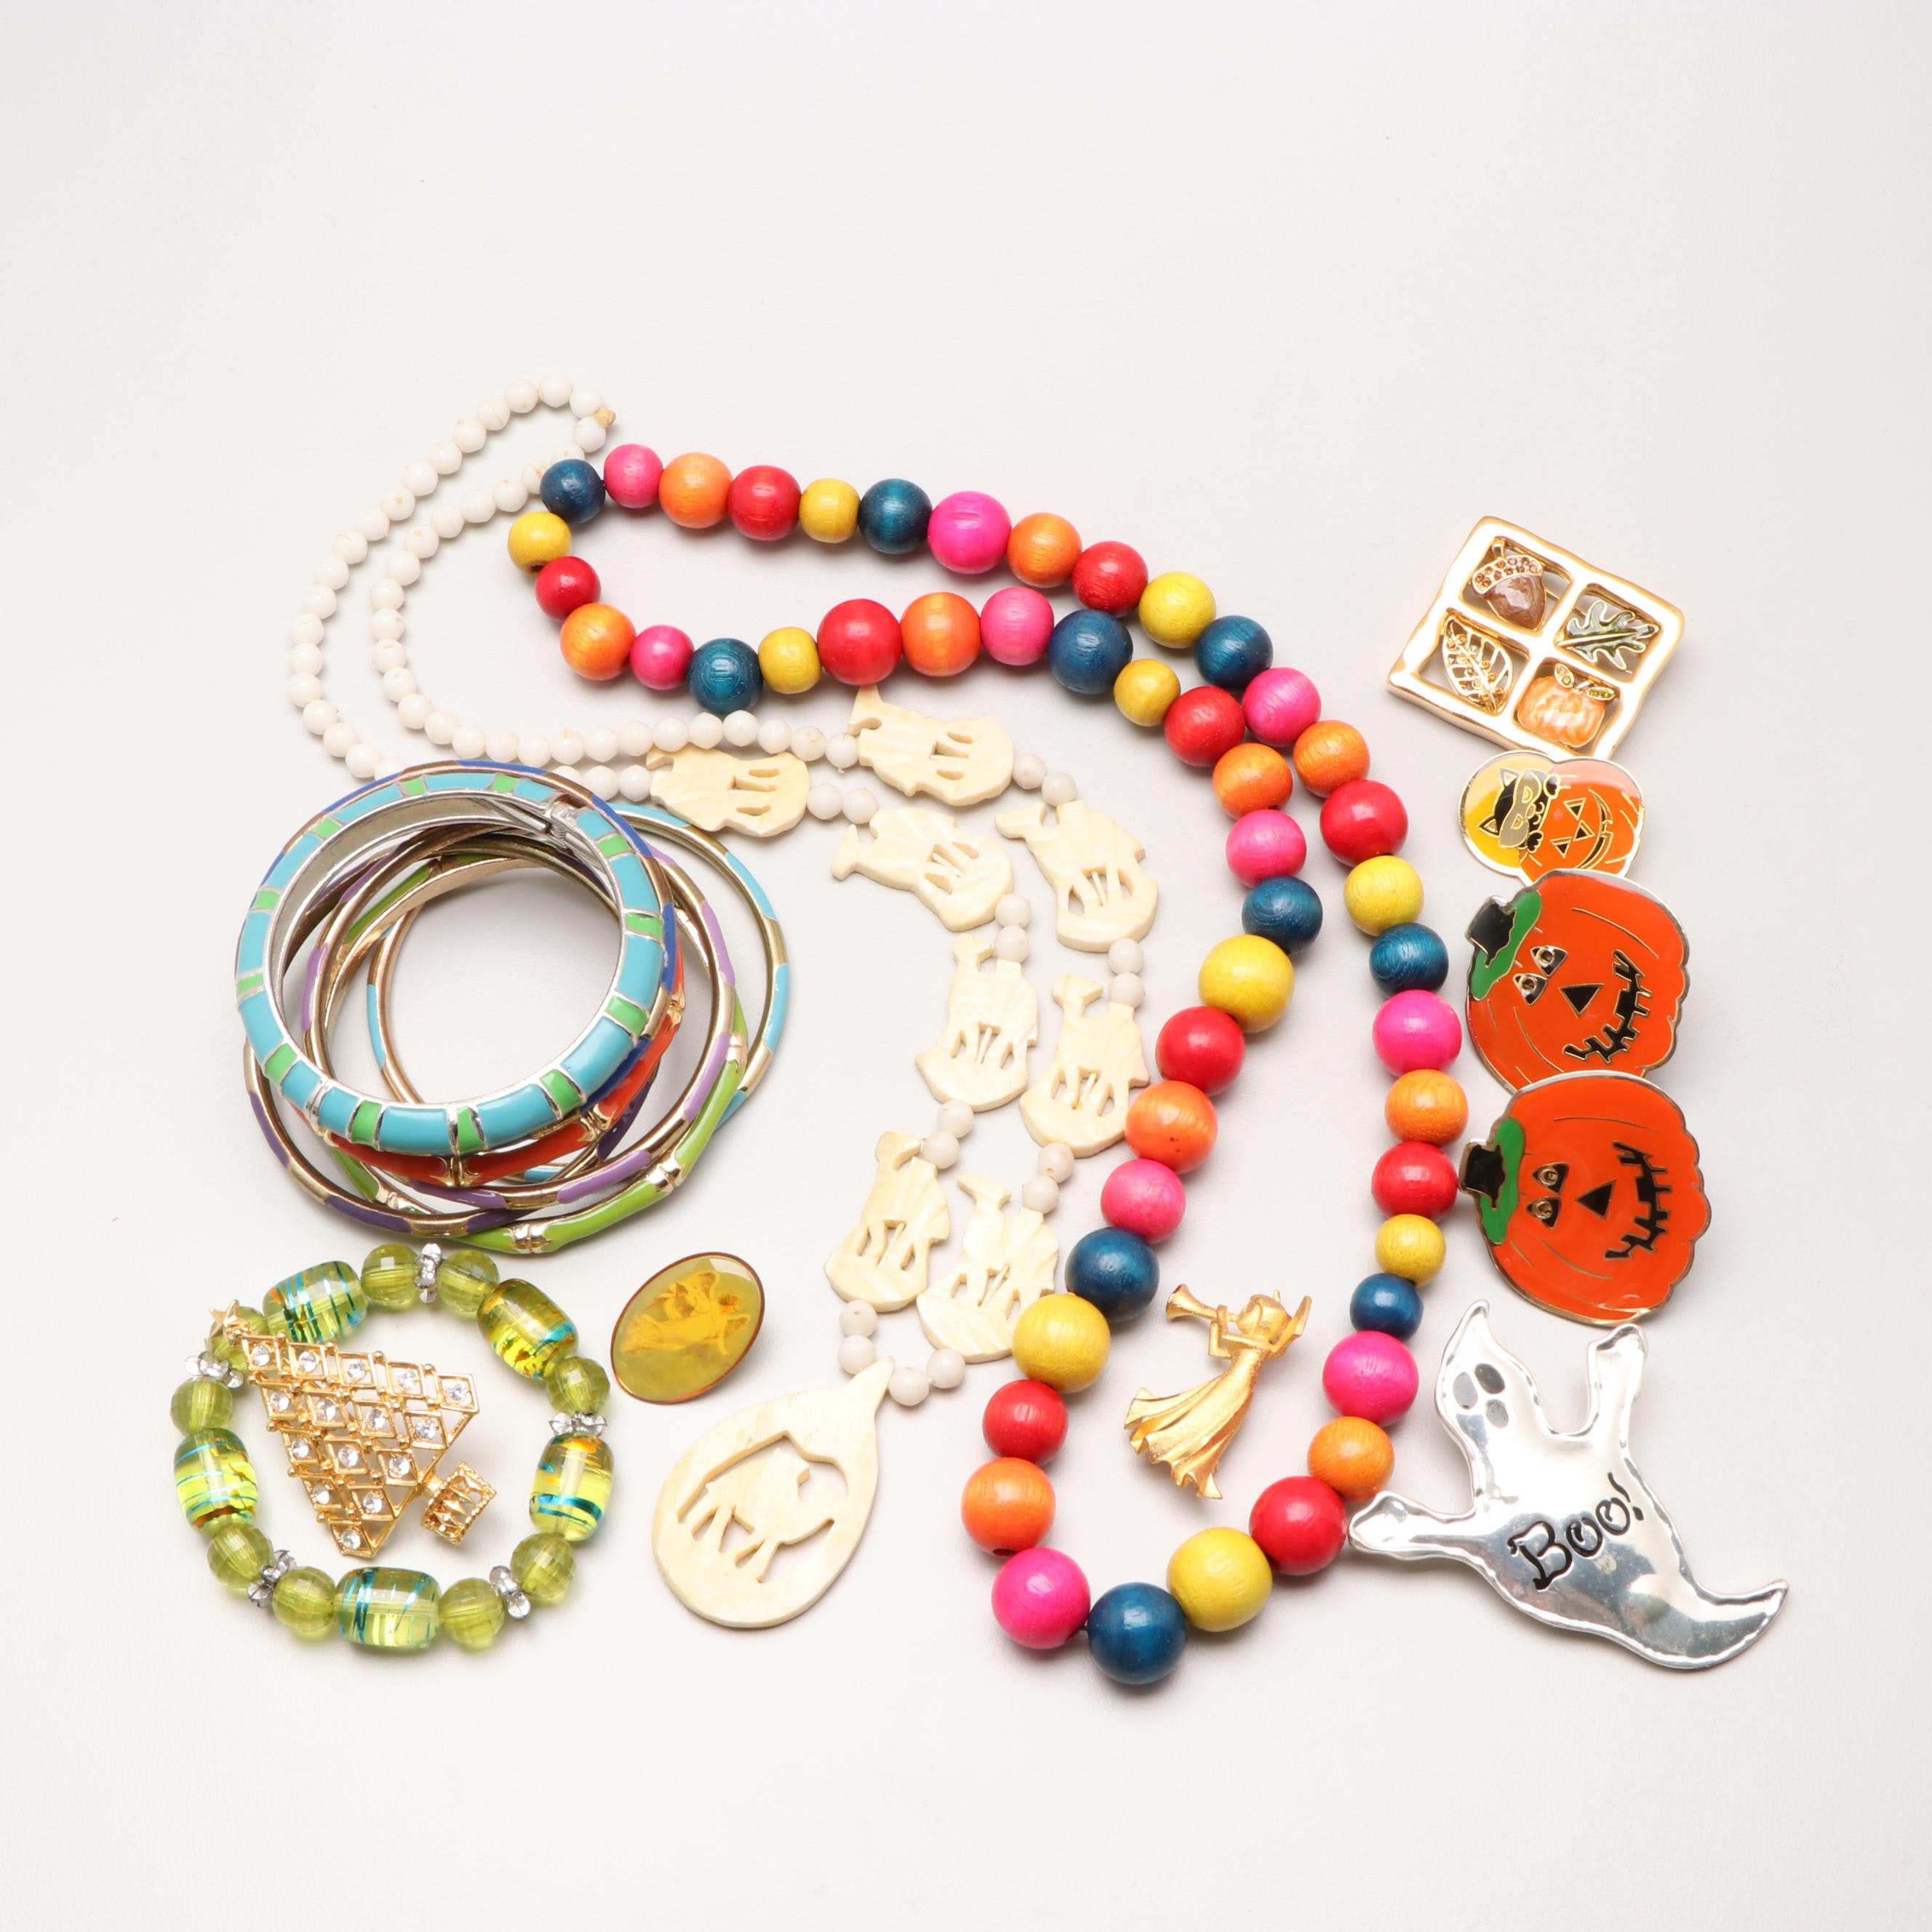 Enamel, Bone and Wood Bracelets, Necklaces and Pins